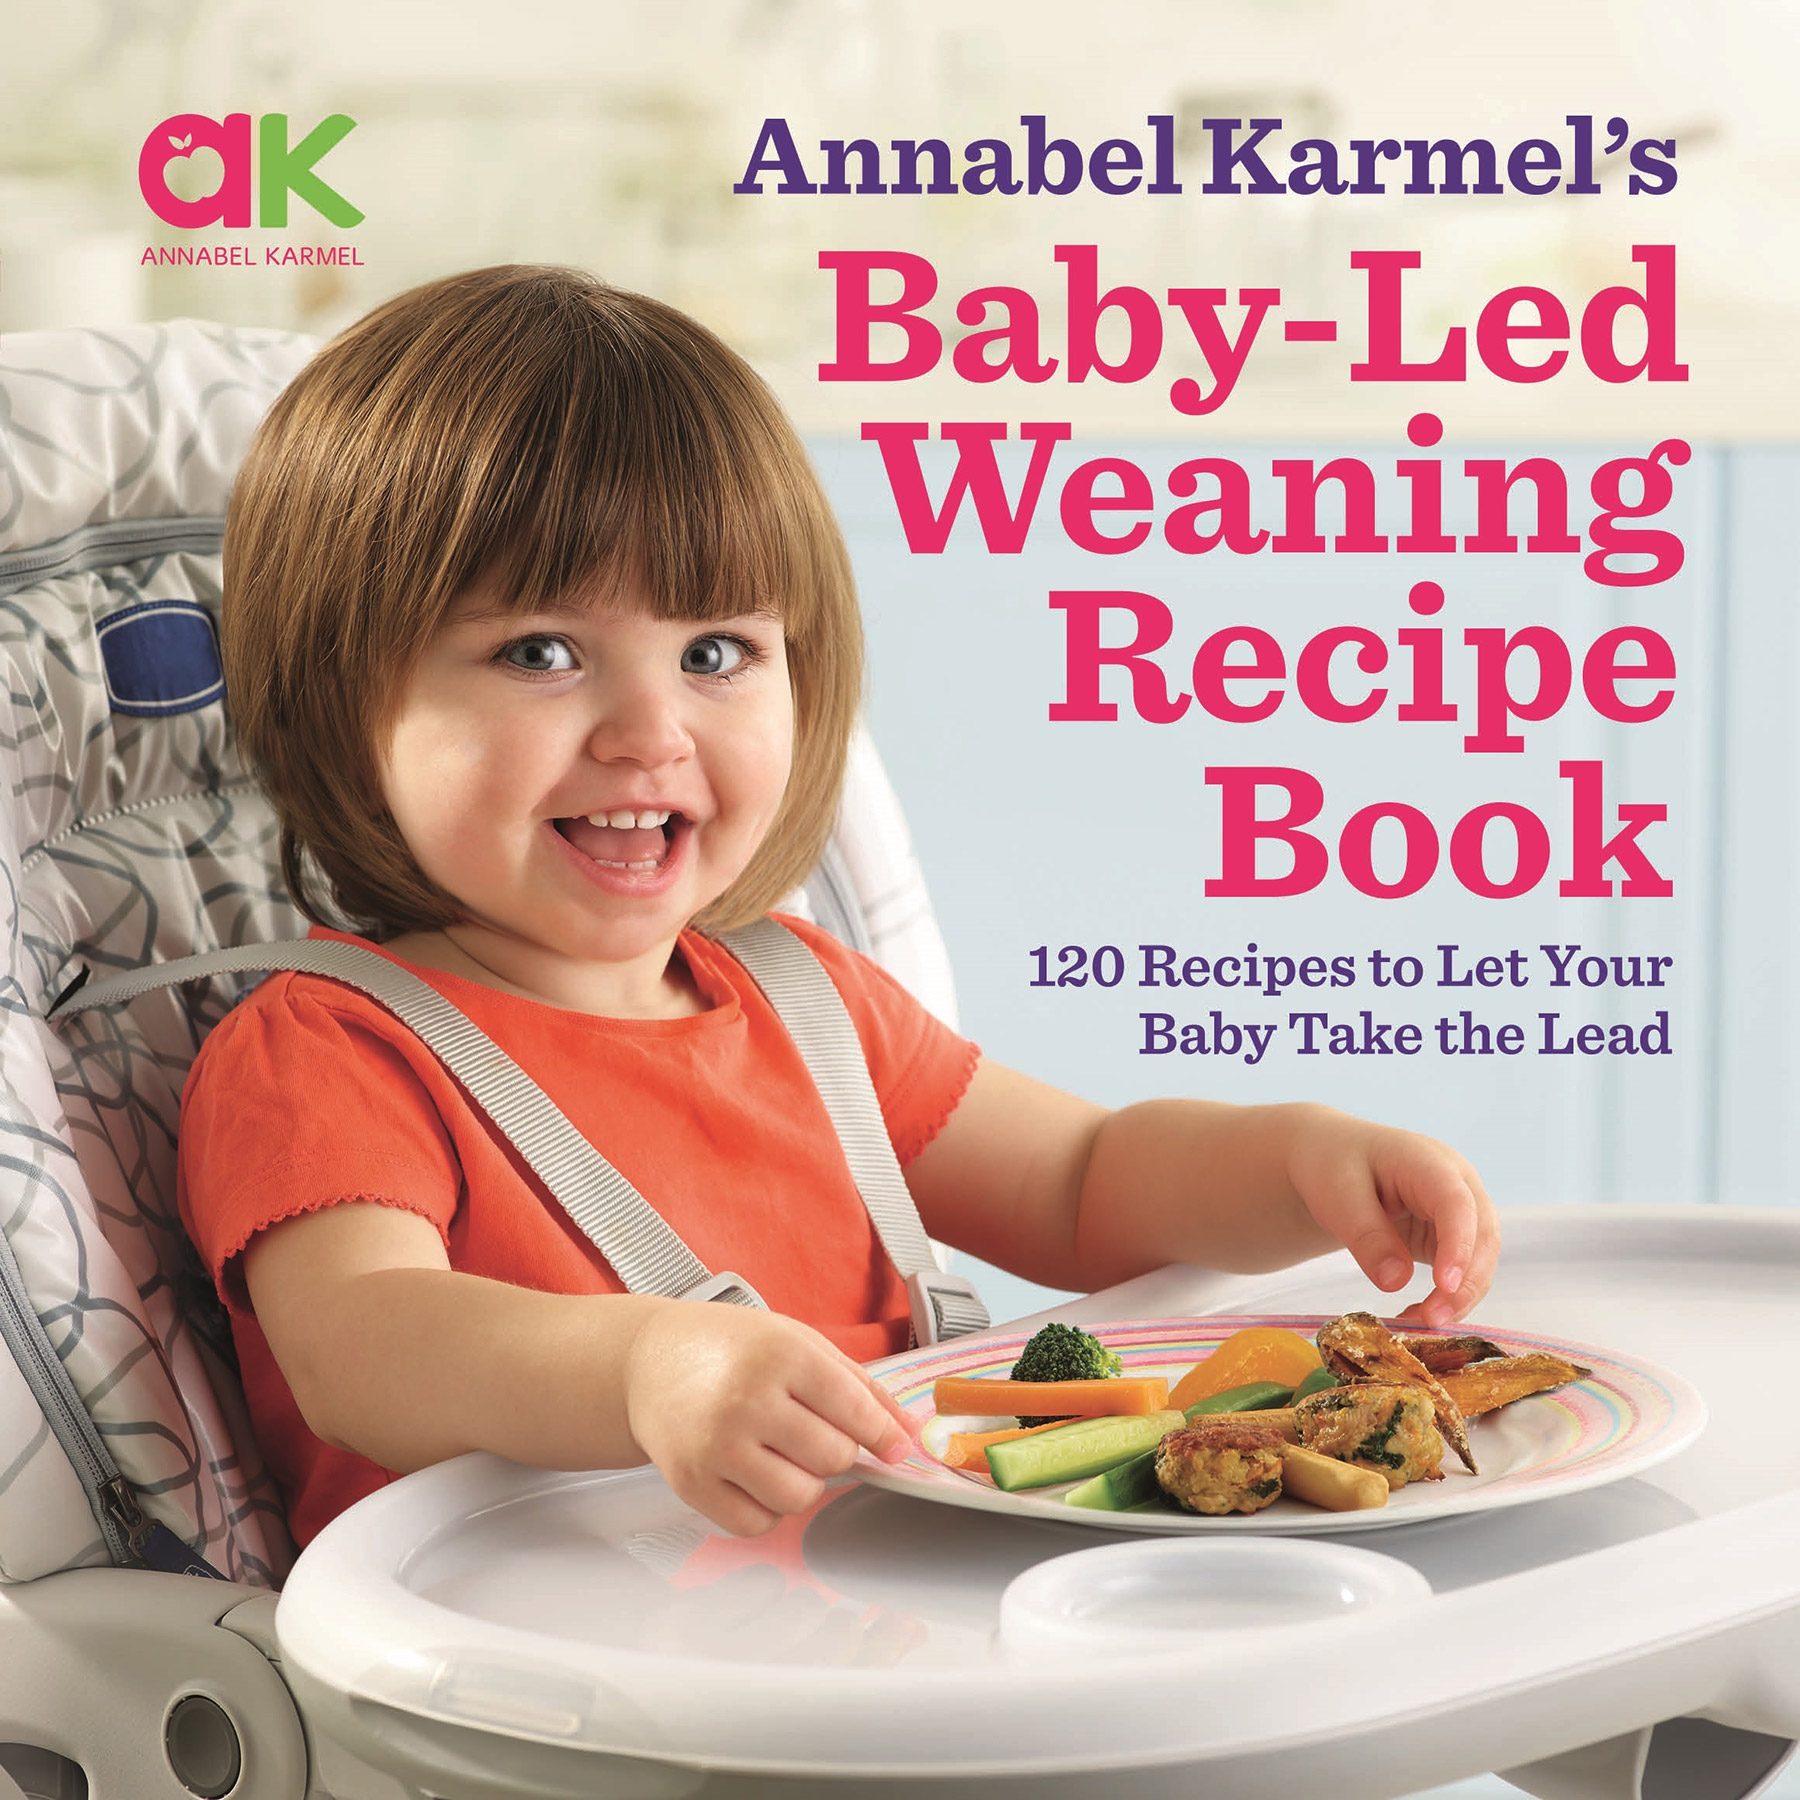 Baby-Led-Weaning-Recipe-Book-Cover-US